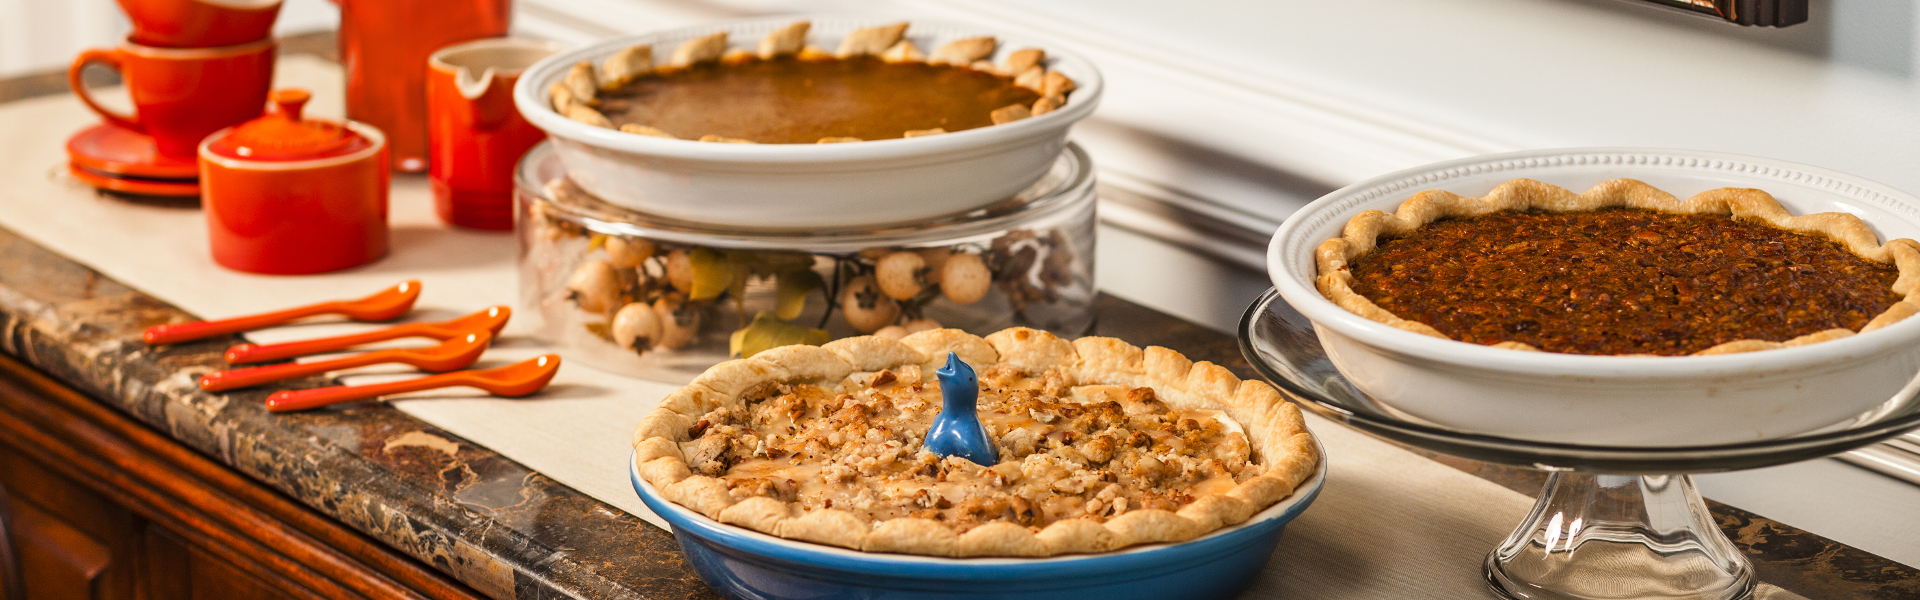 Create Delicious Pies for the Holidays